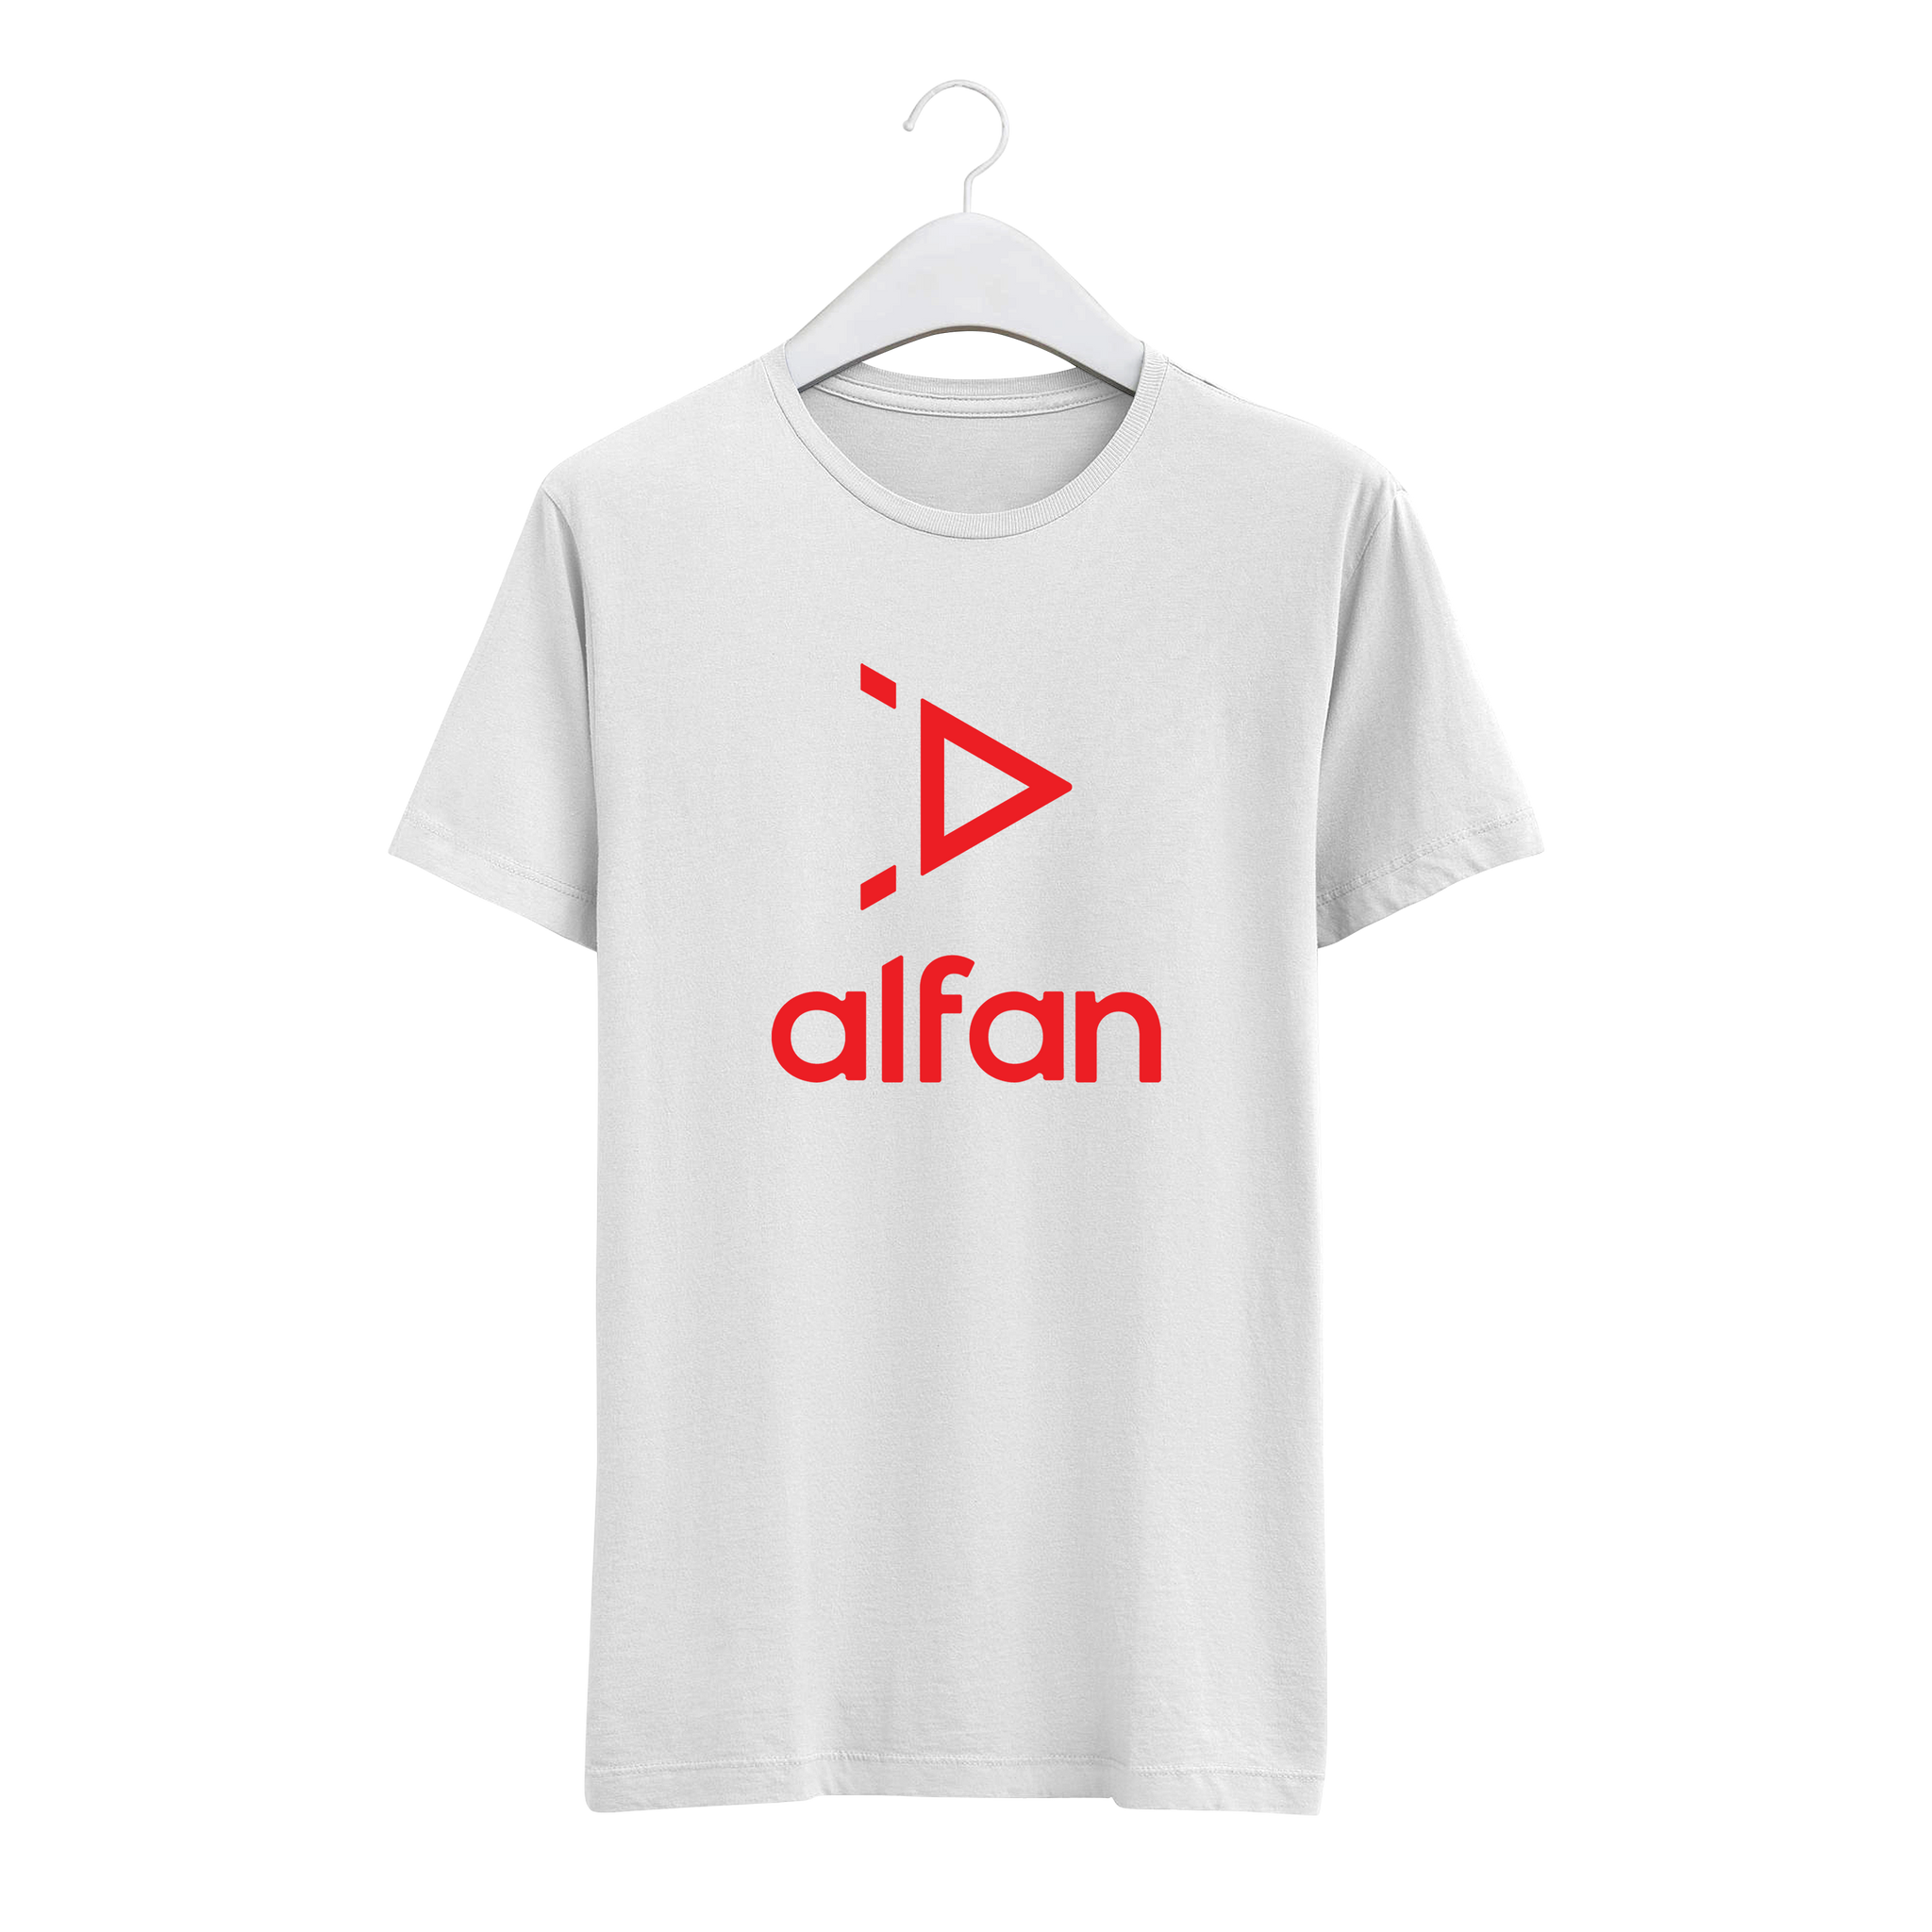 Alfan White T-Shirt